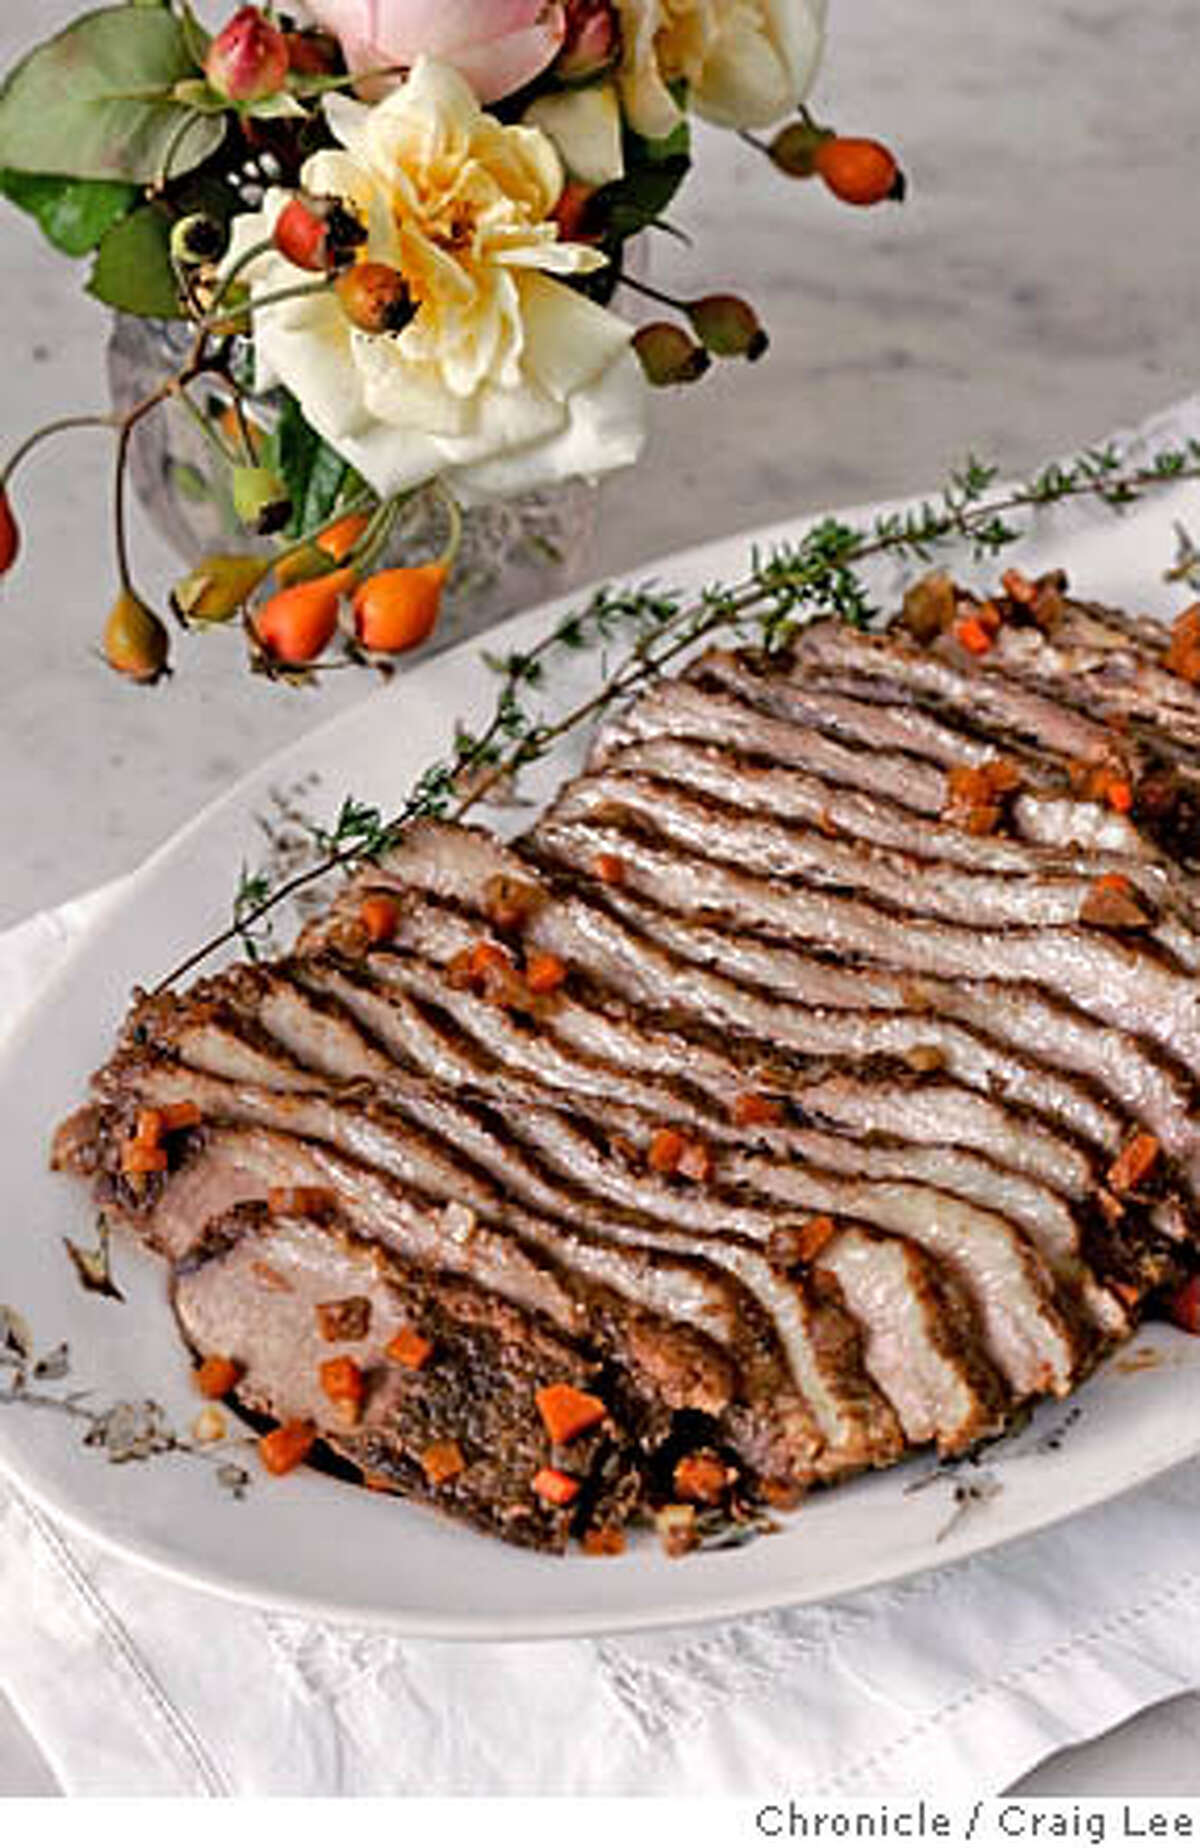 BRISKET21_191_cl.JPG Food story on Brisket of Beef. Event on 12/14/05 in San Francisco. Craig Lee / The Chronicle MANDATORY CREDIT FOR PHOTOG AND SF CHRONICLE/ -MAGS OUT